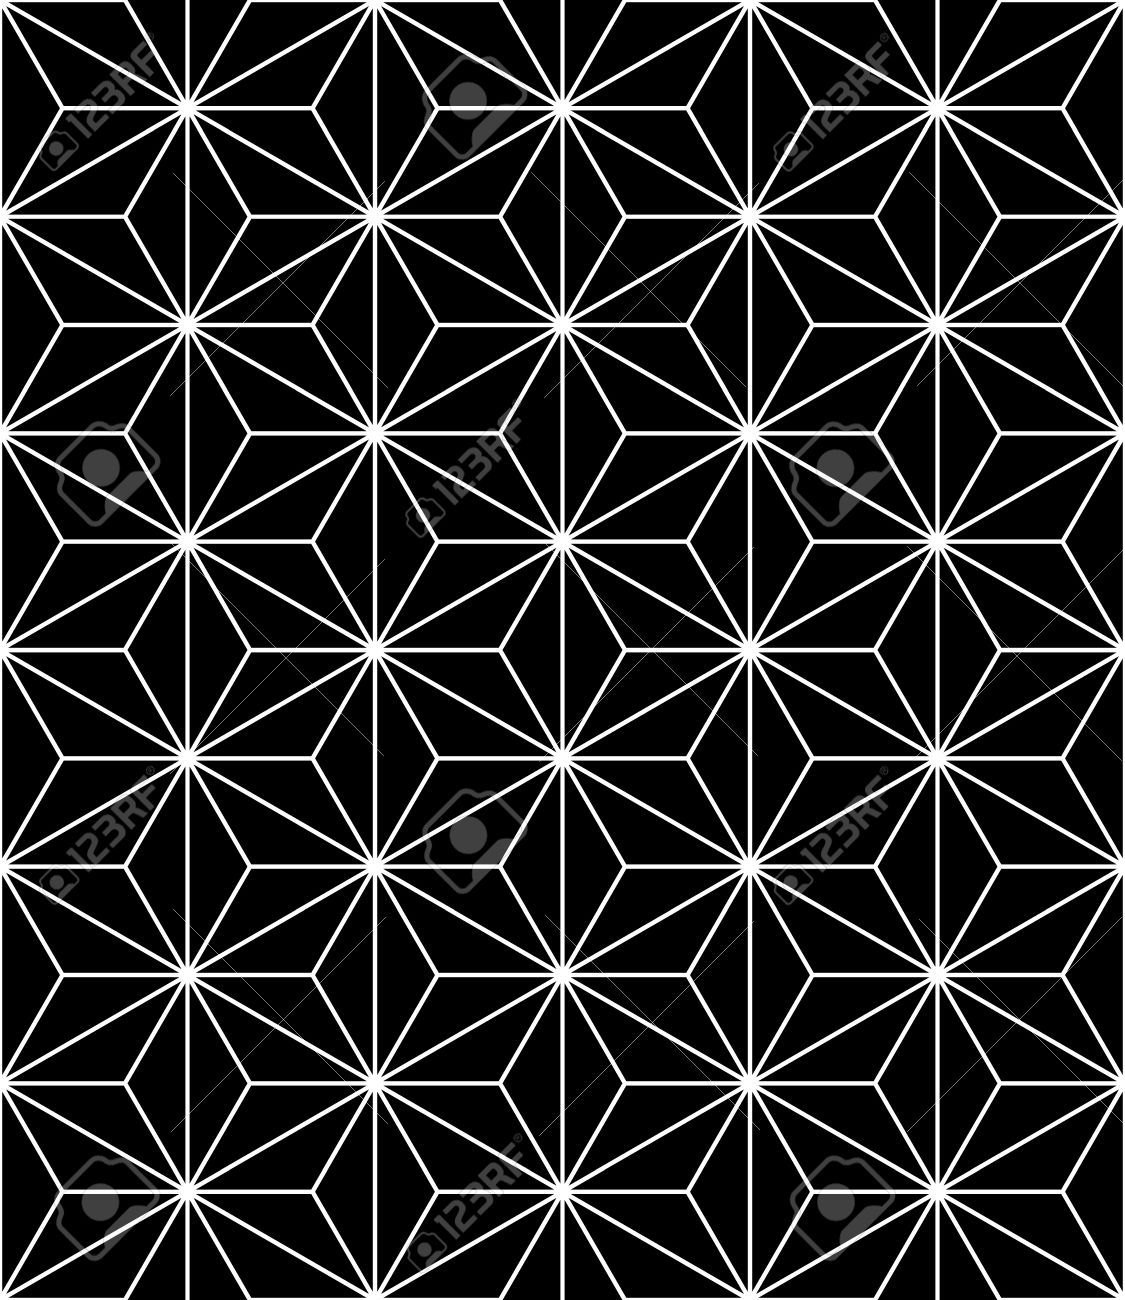 46815453 modern seamless sacred geometry pattern black and for Modern patterns black and white